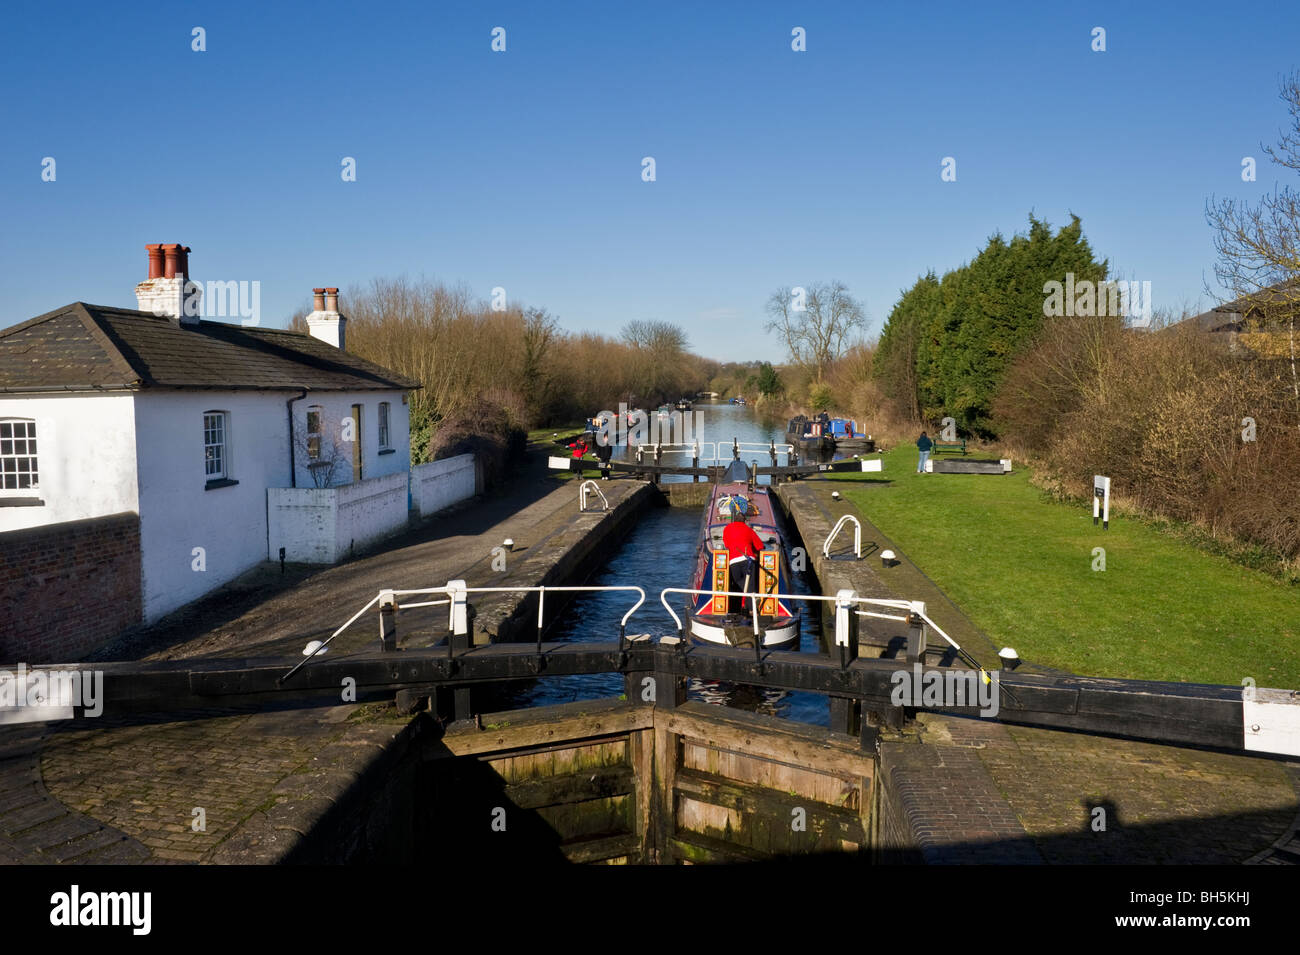 A lock keeper's cottage next to closed canal lock gates at the Grand Union Canal near Harefield Middlesex West - Stock Image